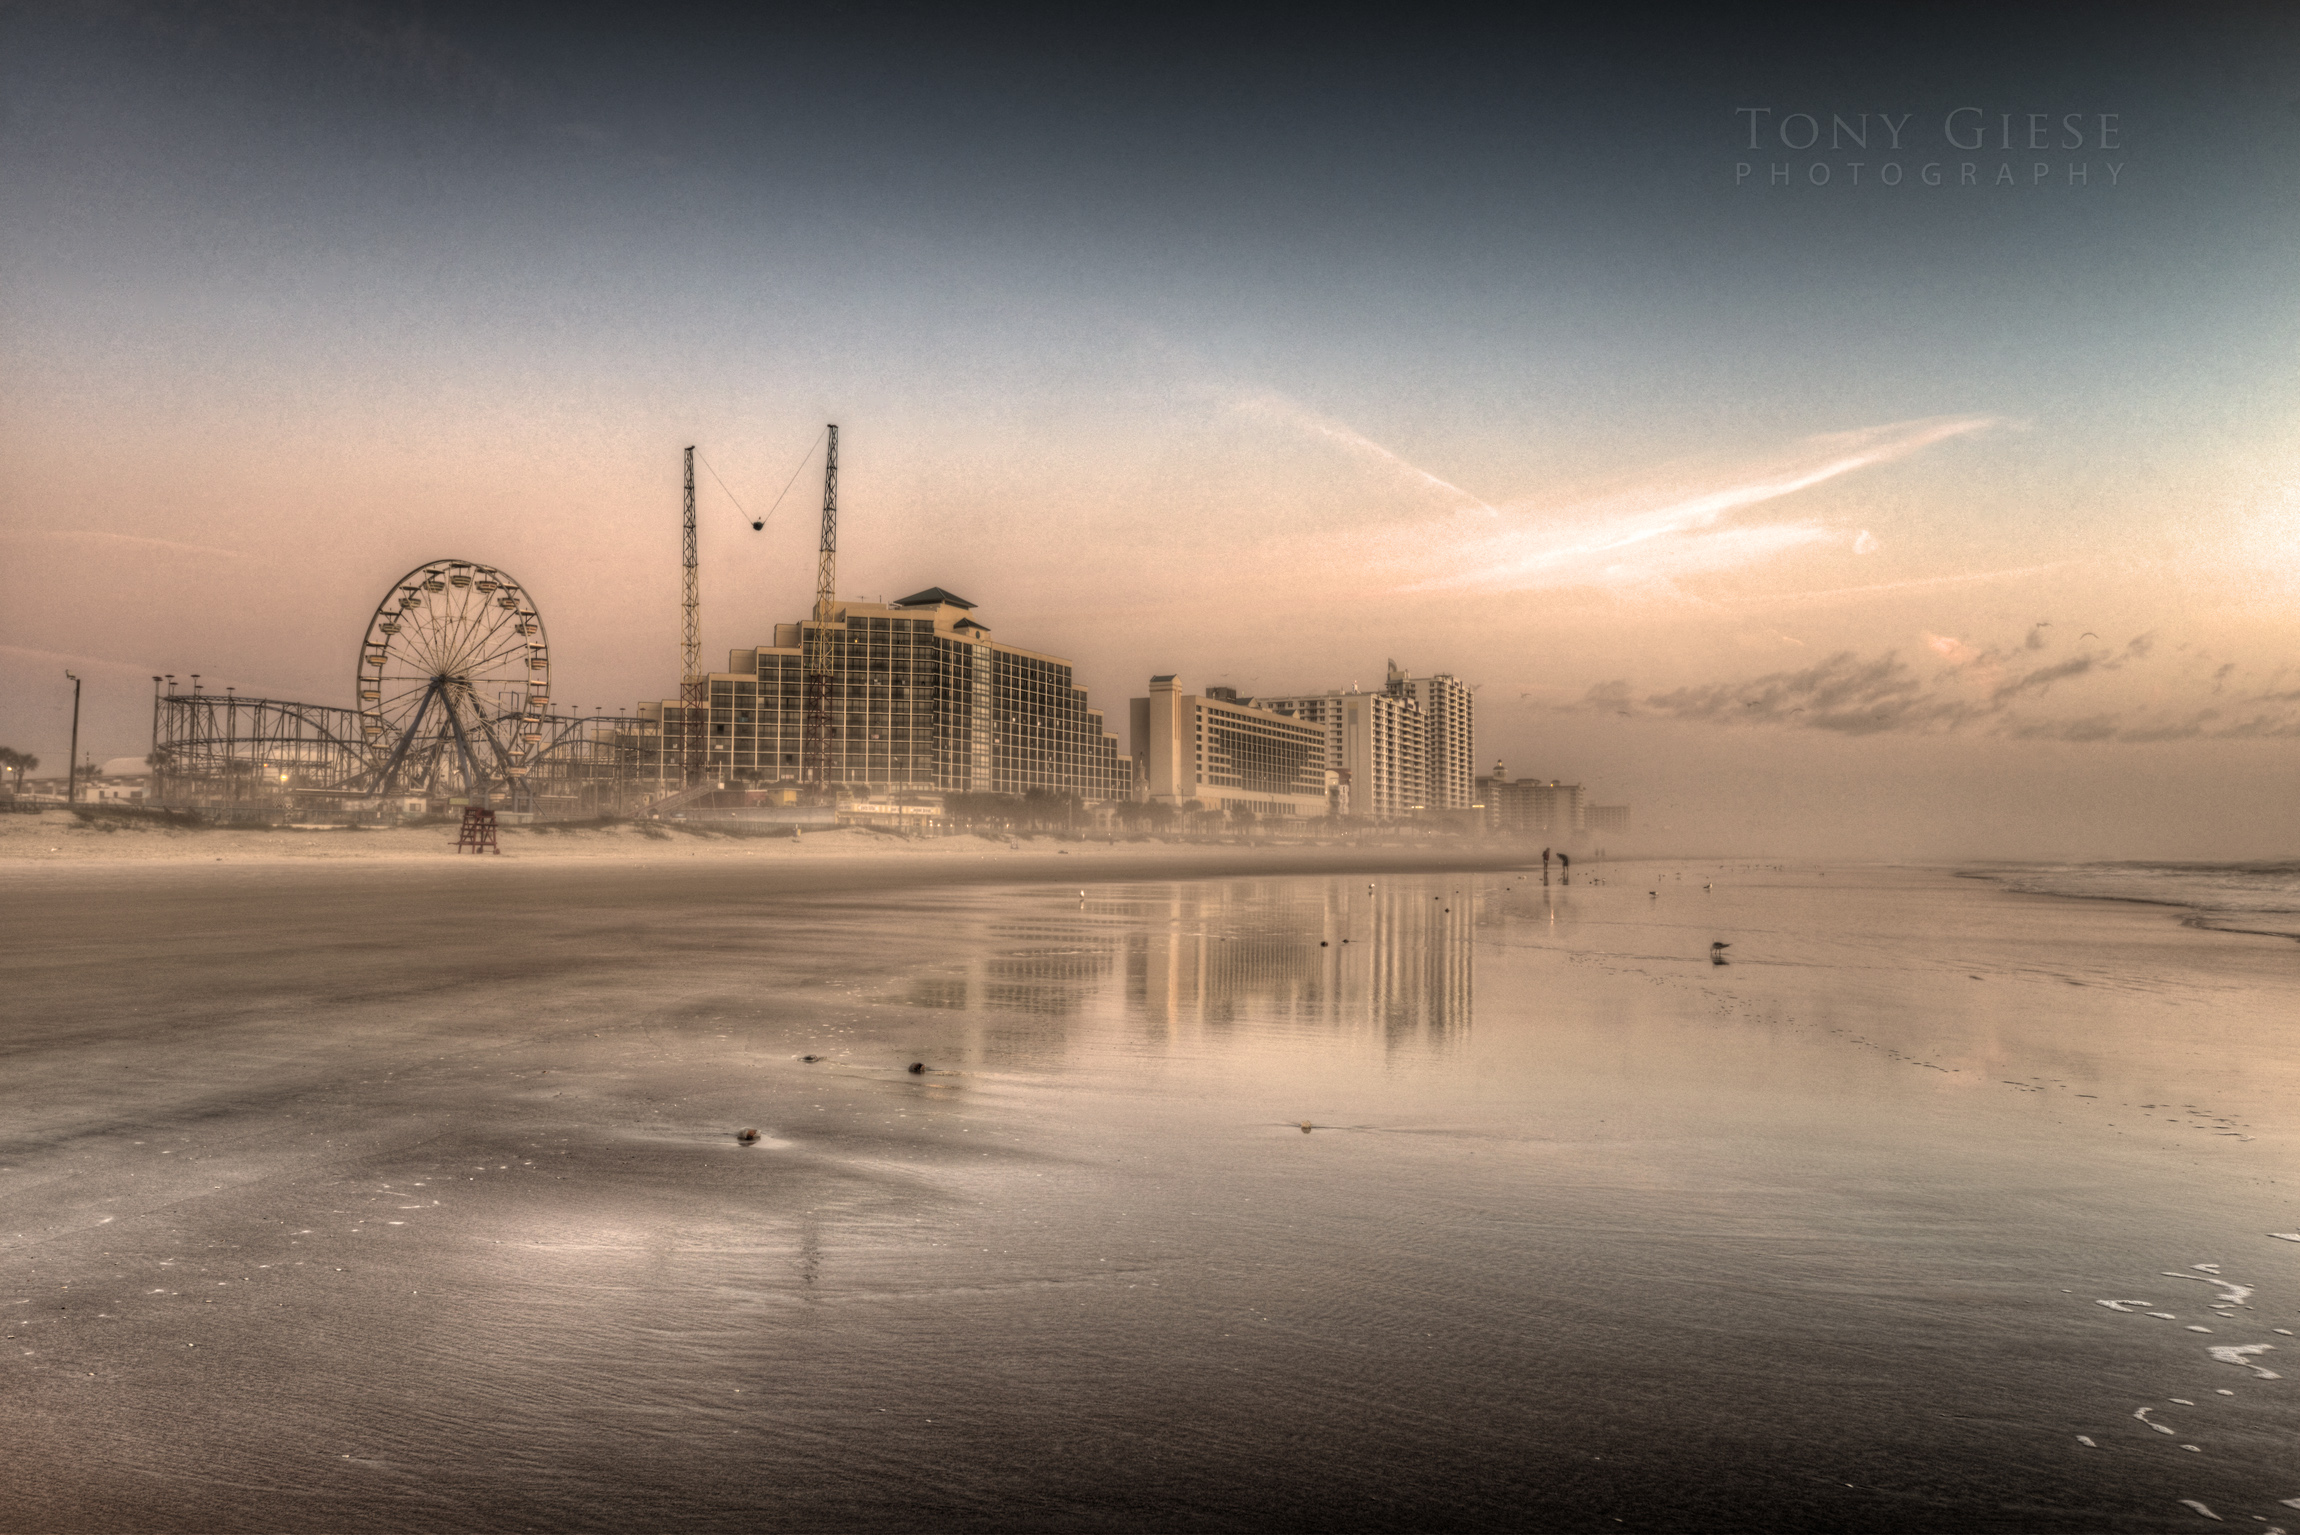 Foggy morning on Daytona Beach, Florida.